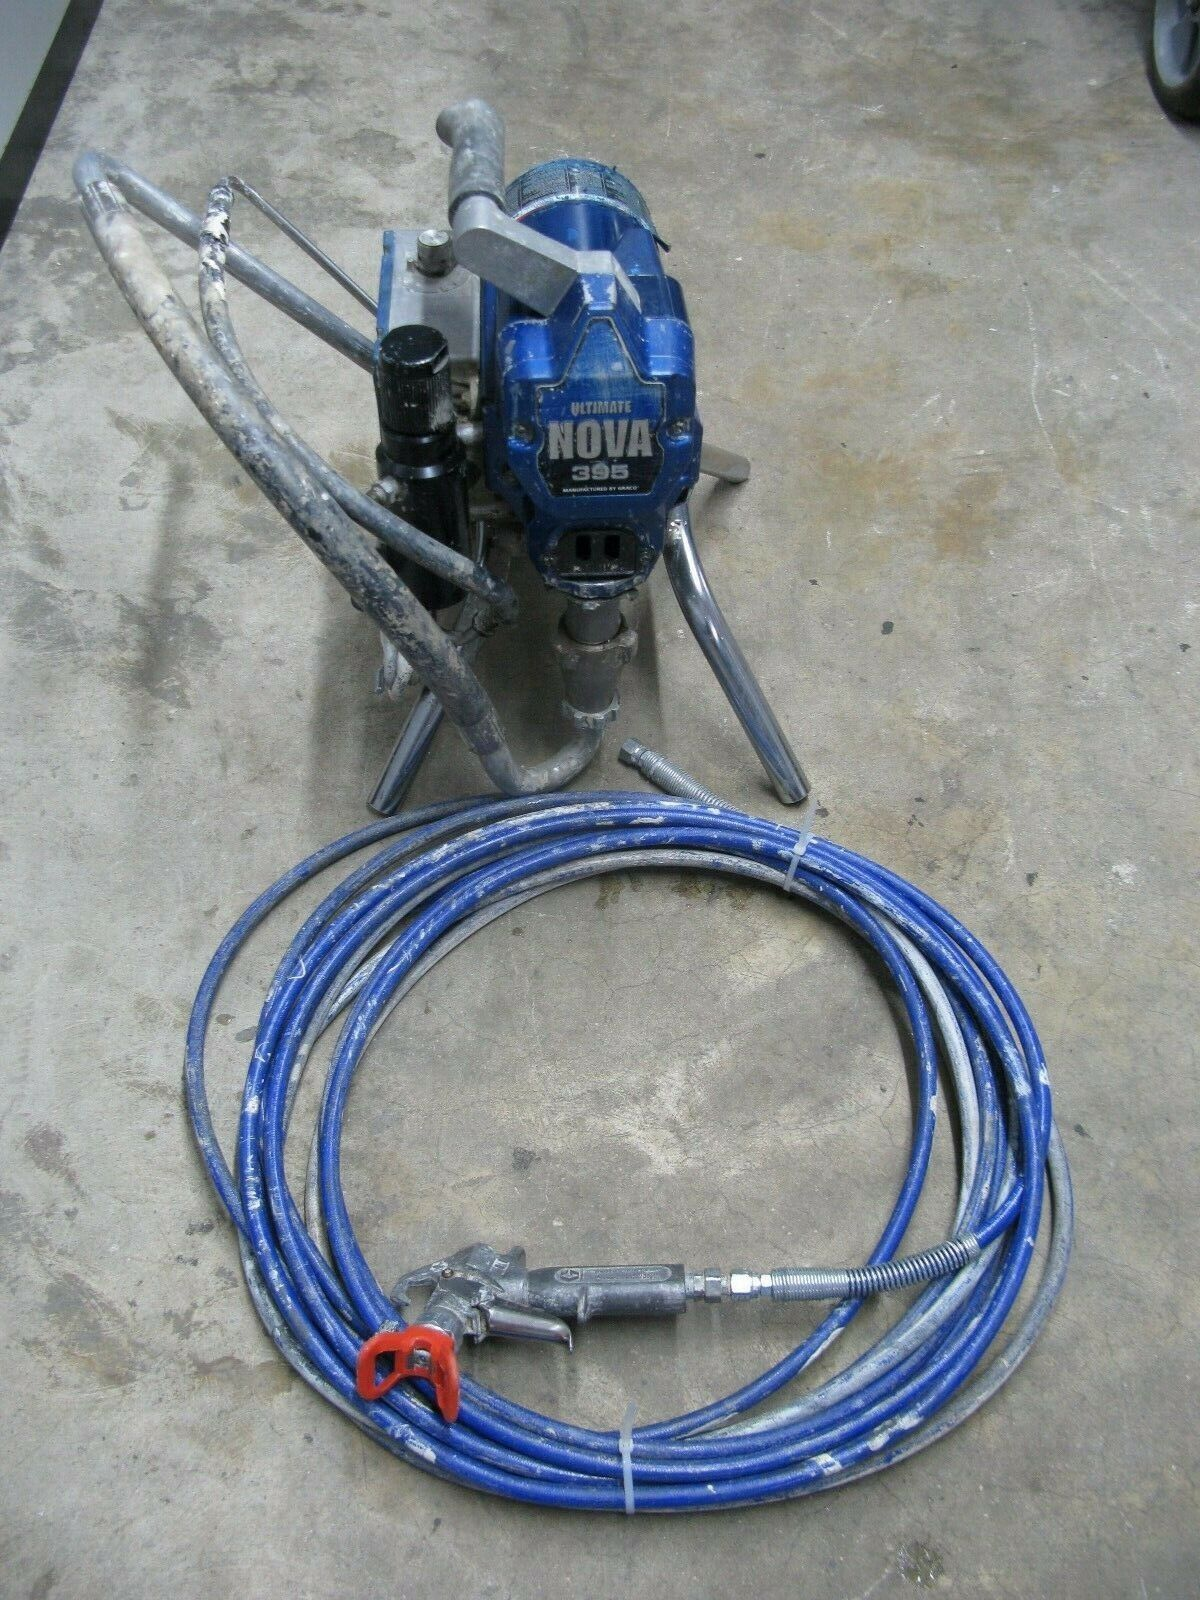 Graco Ultimate Nova 395 Electric Airless Paint Sprayer 495 595 Ebay In 2020 Paint Sprayer Sprayers Hvlp Paint Sprayer